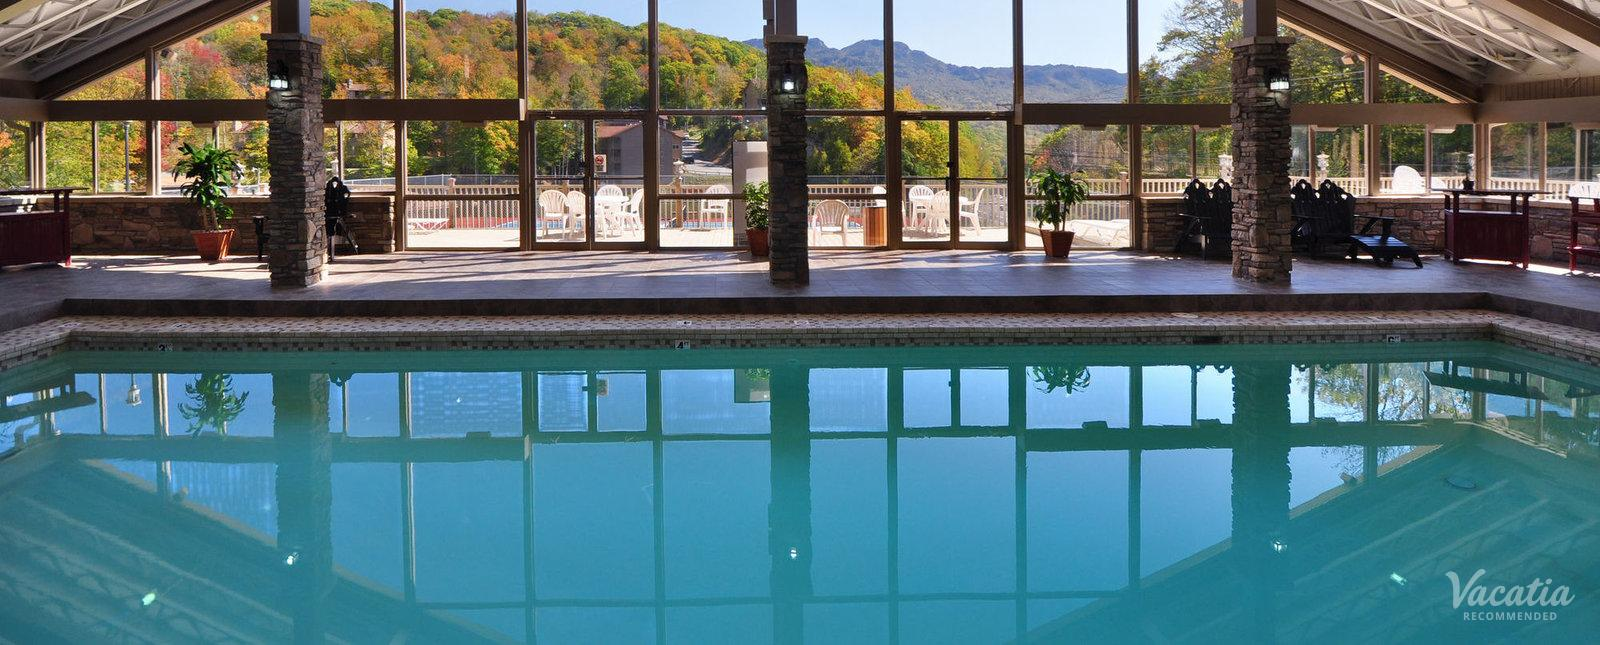 Bluegreen Vacations Blue Ridge Village Pool